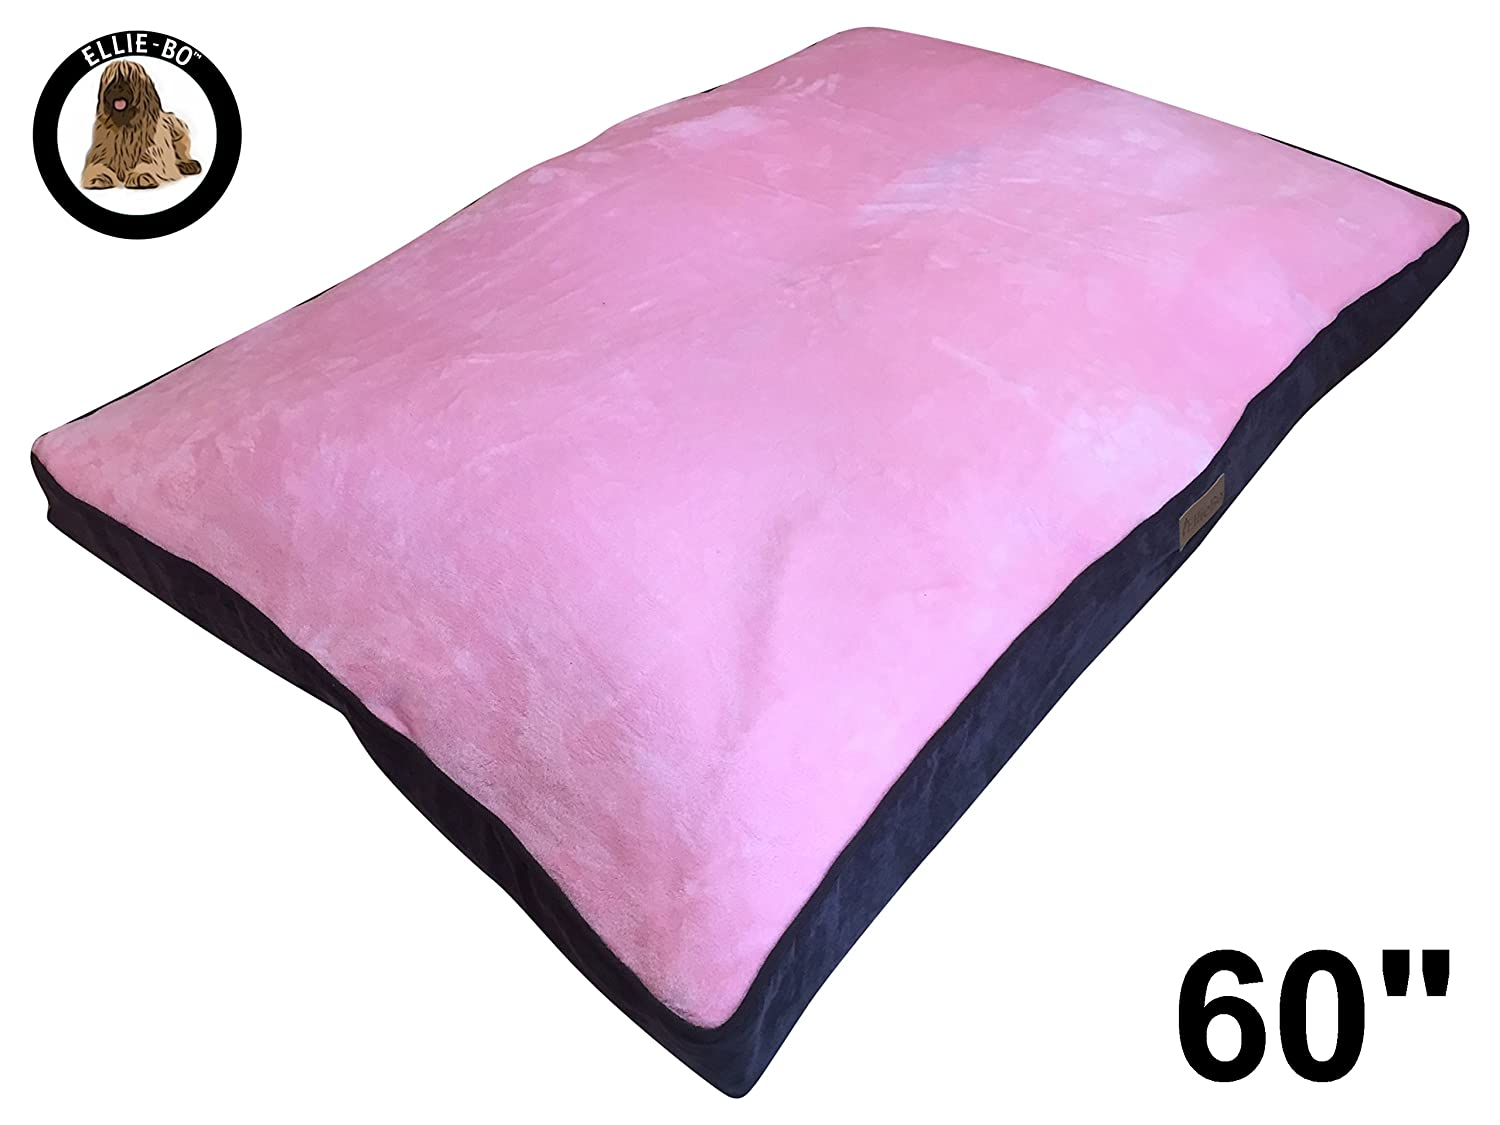 Ellie-Bo Jumbo Dog Bed with Corduroy Sides and Faux Fur Topping, 152 x 100 cm, Brown Pink